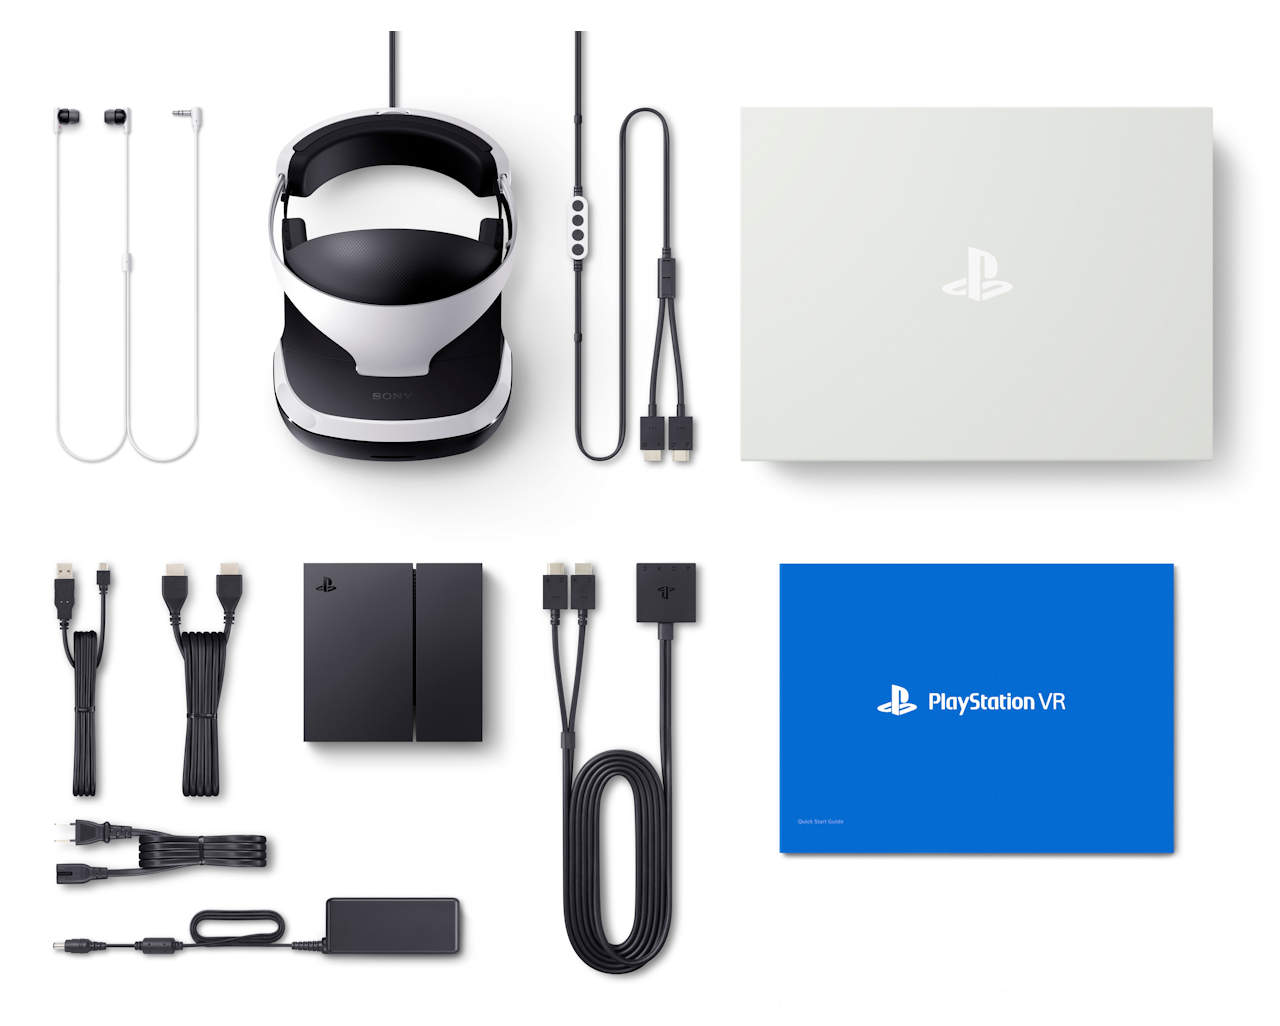 SONY PlayStation VR Contents of retail package